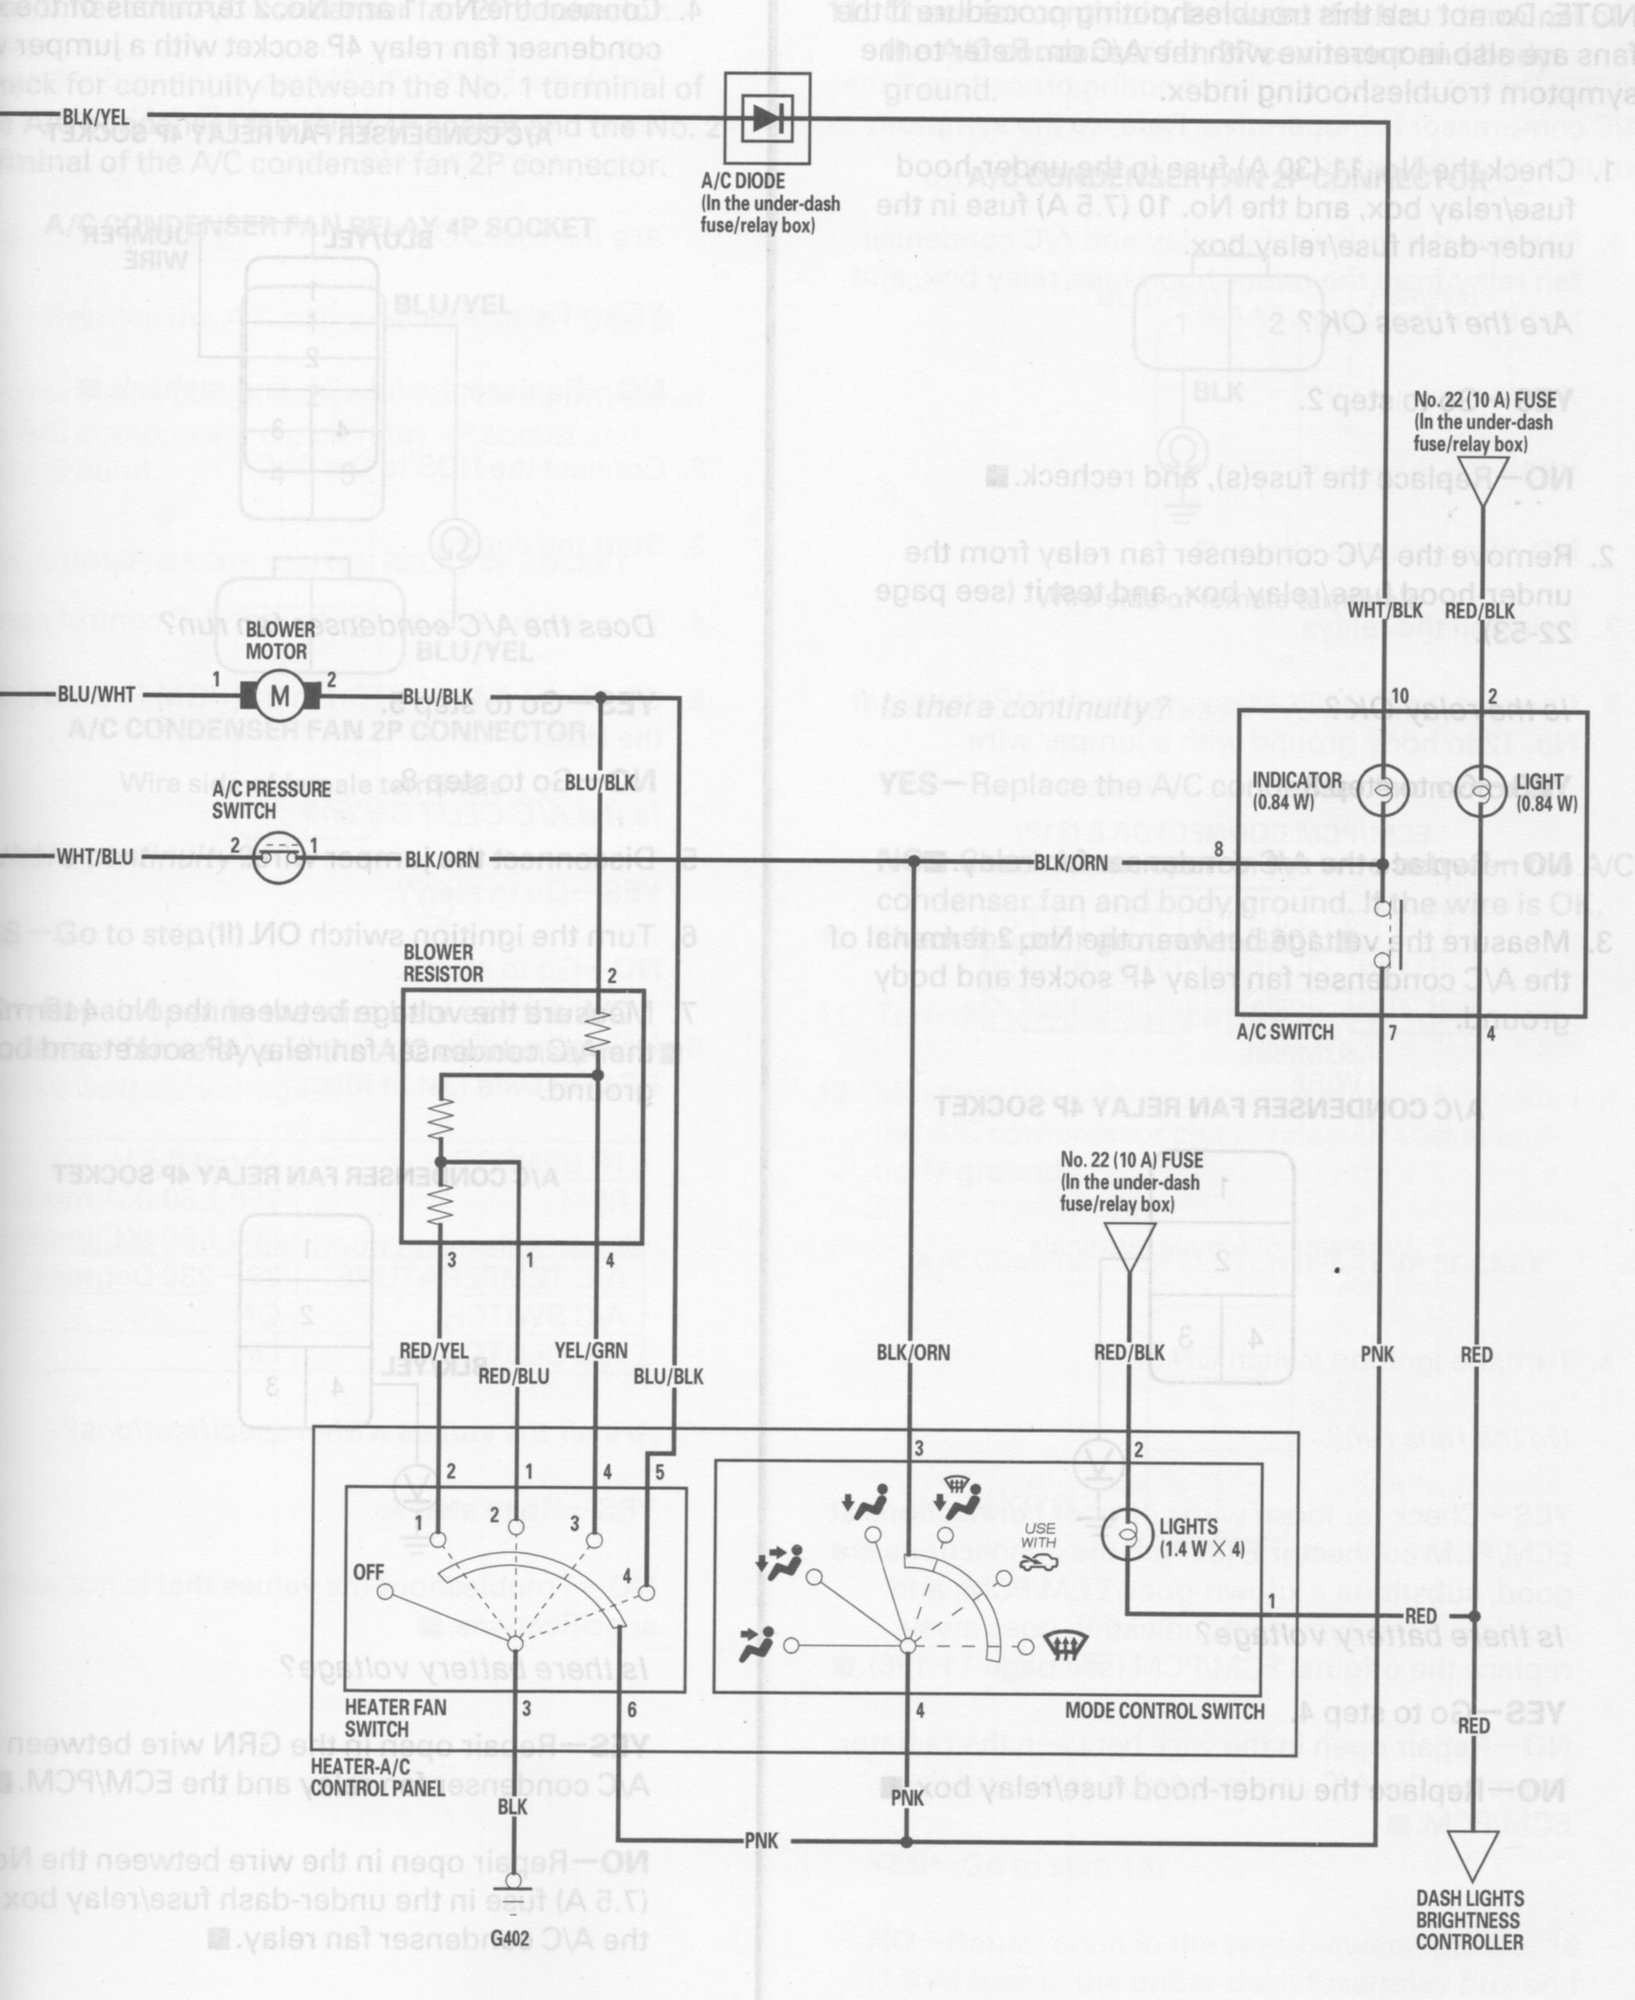 wiring schamatic a/c system - unofficial honda fit forums  unofficial honda fit forums